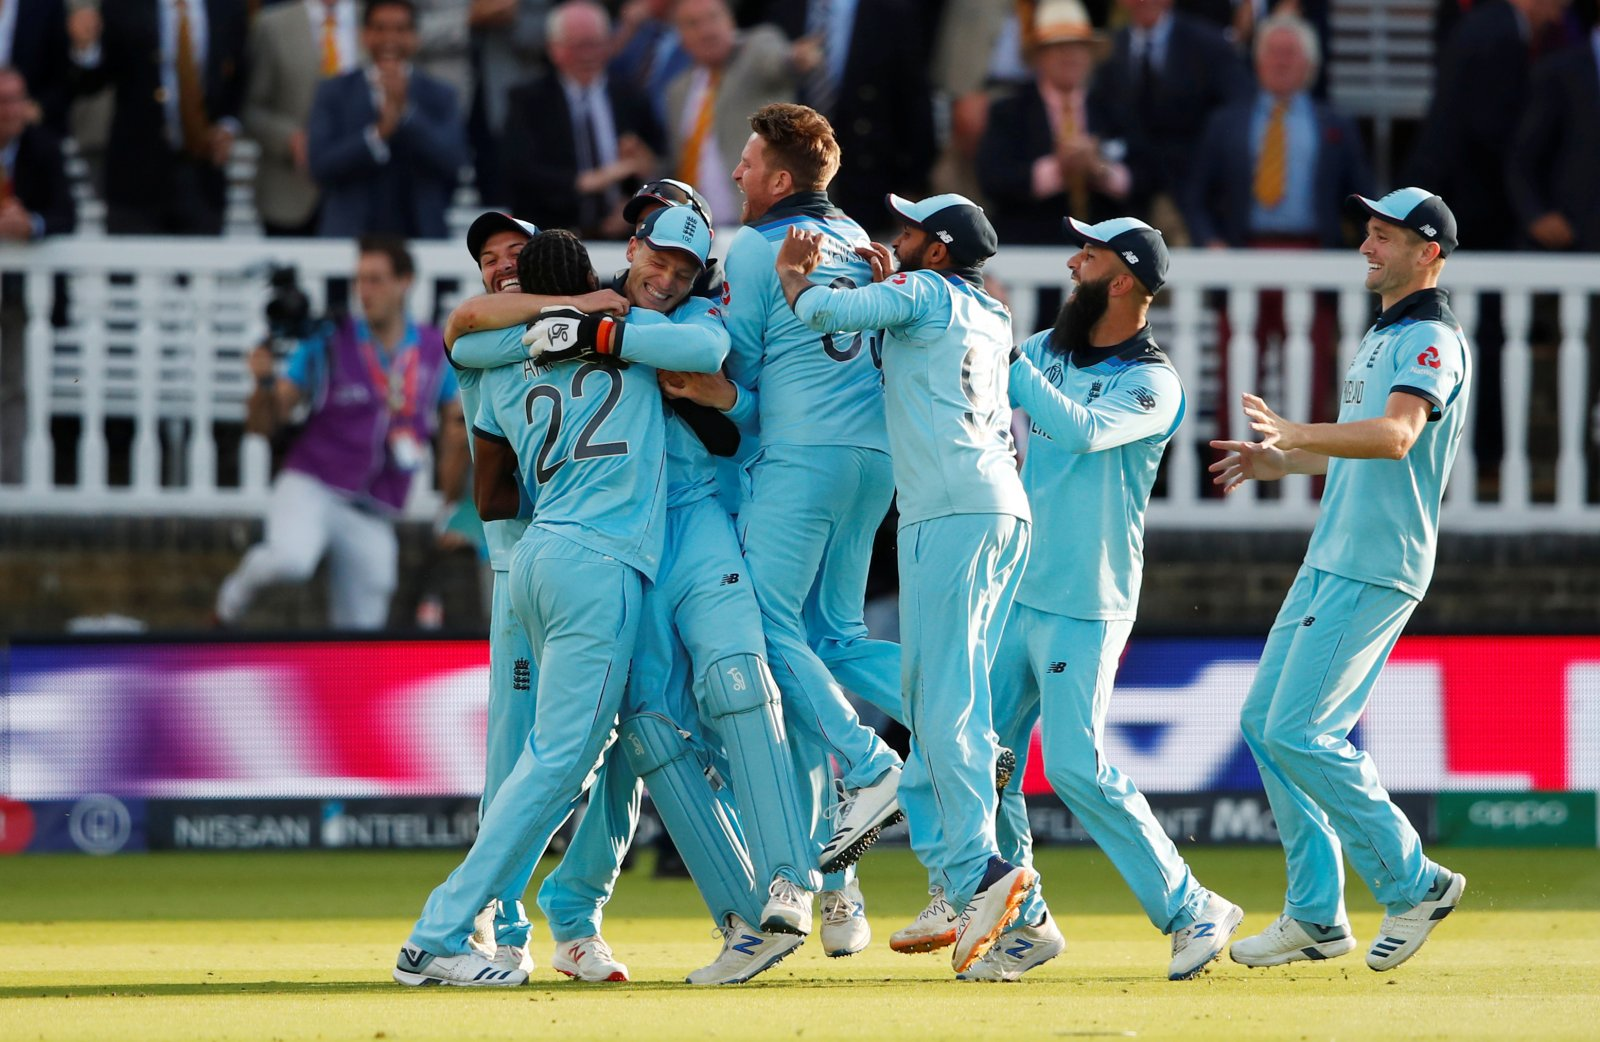 Indian cricket fans betting trends regulated binary options brokers list